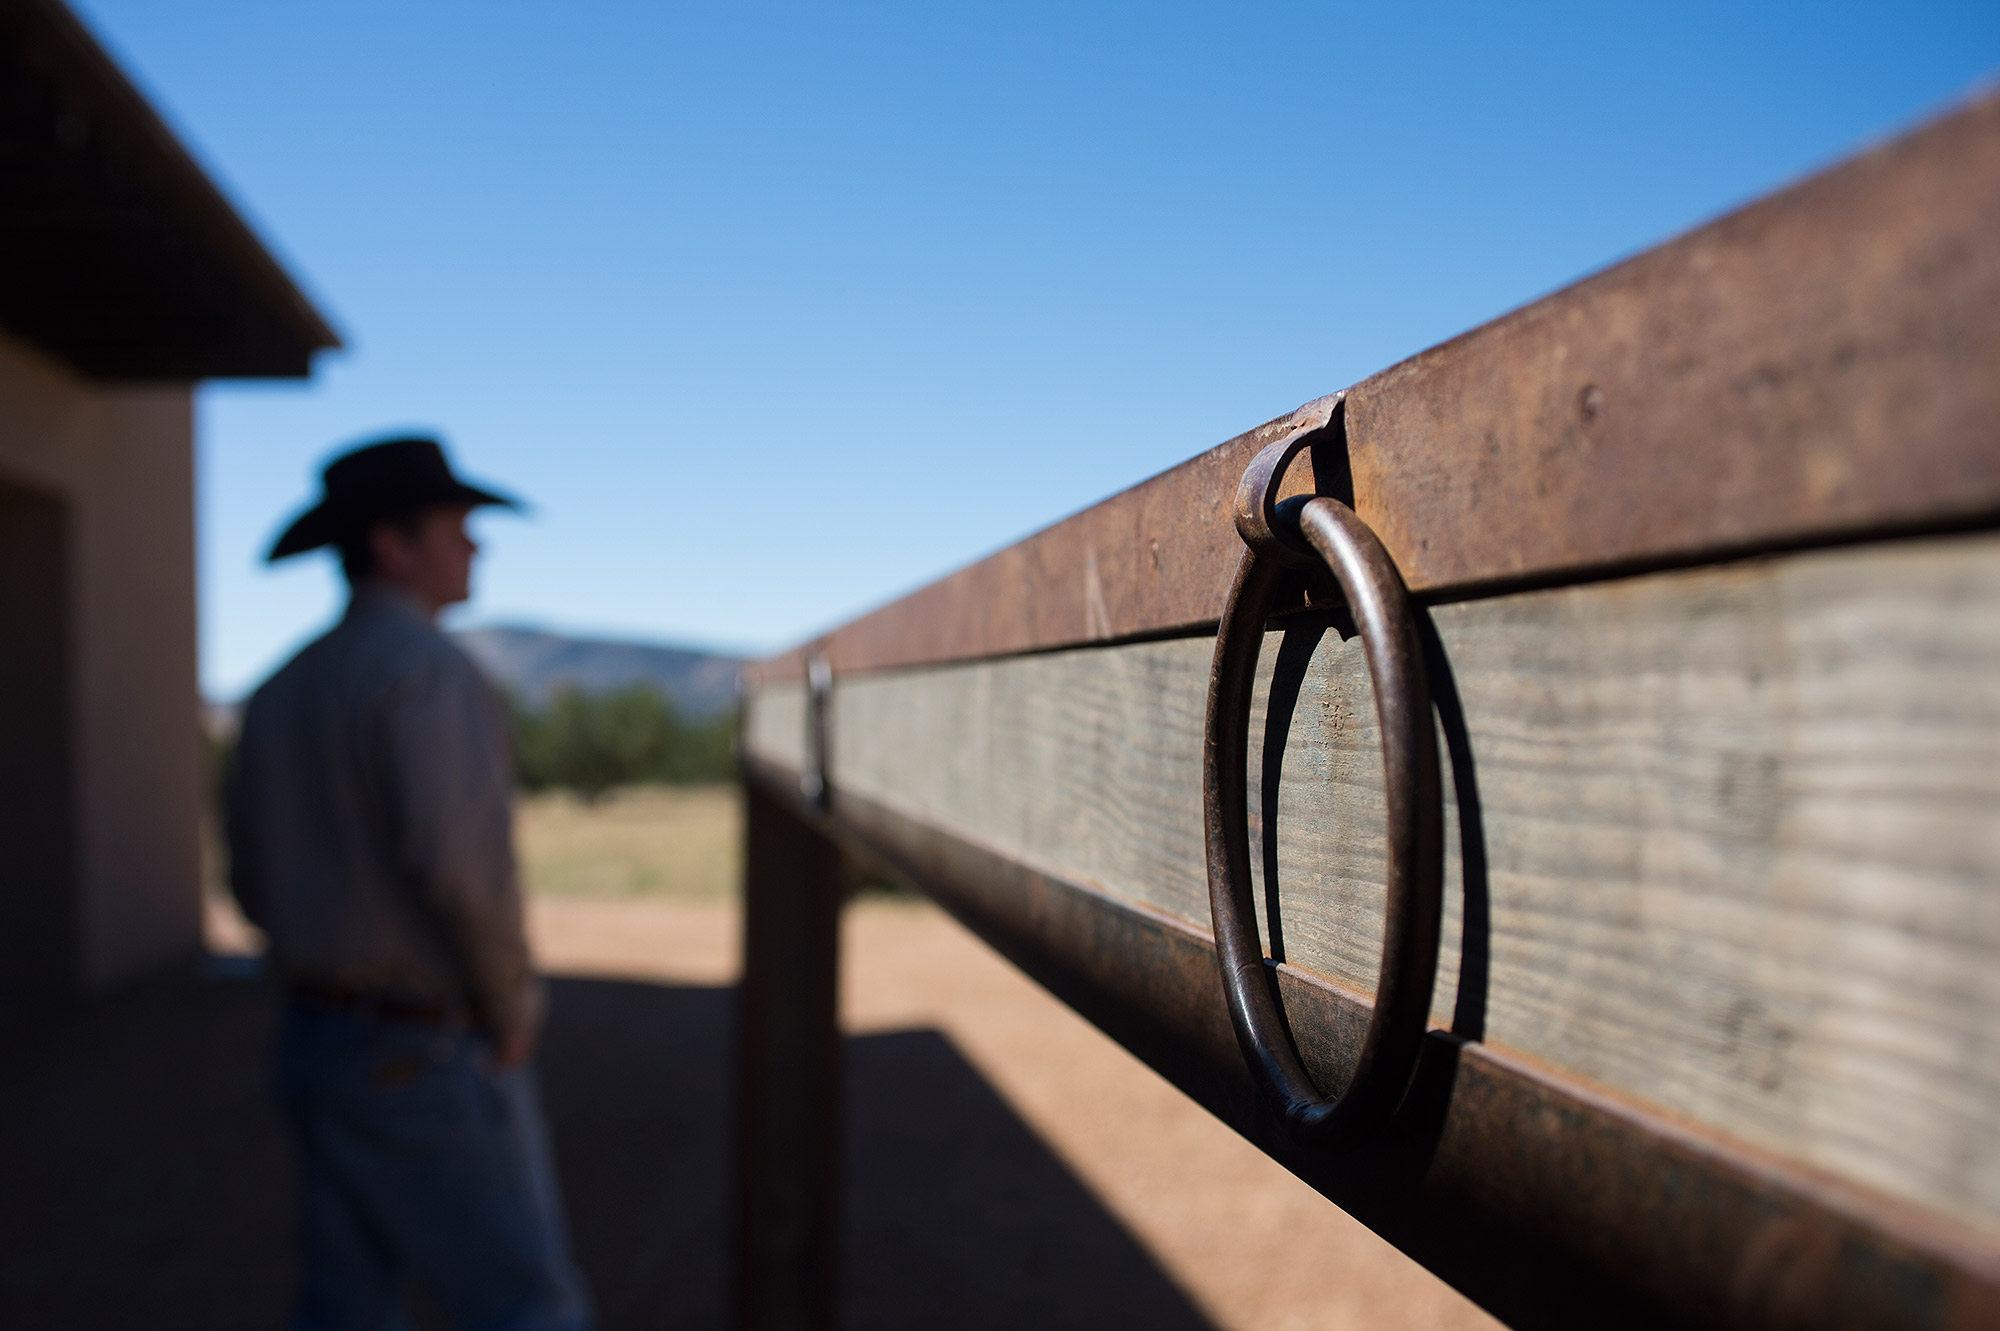 Tom Fords Santa Fe Ranch Is Now Up For Sale Tom Fords Santa Fe Ranch Is Now Up For Sale new photo